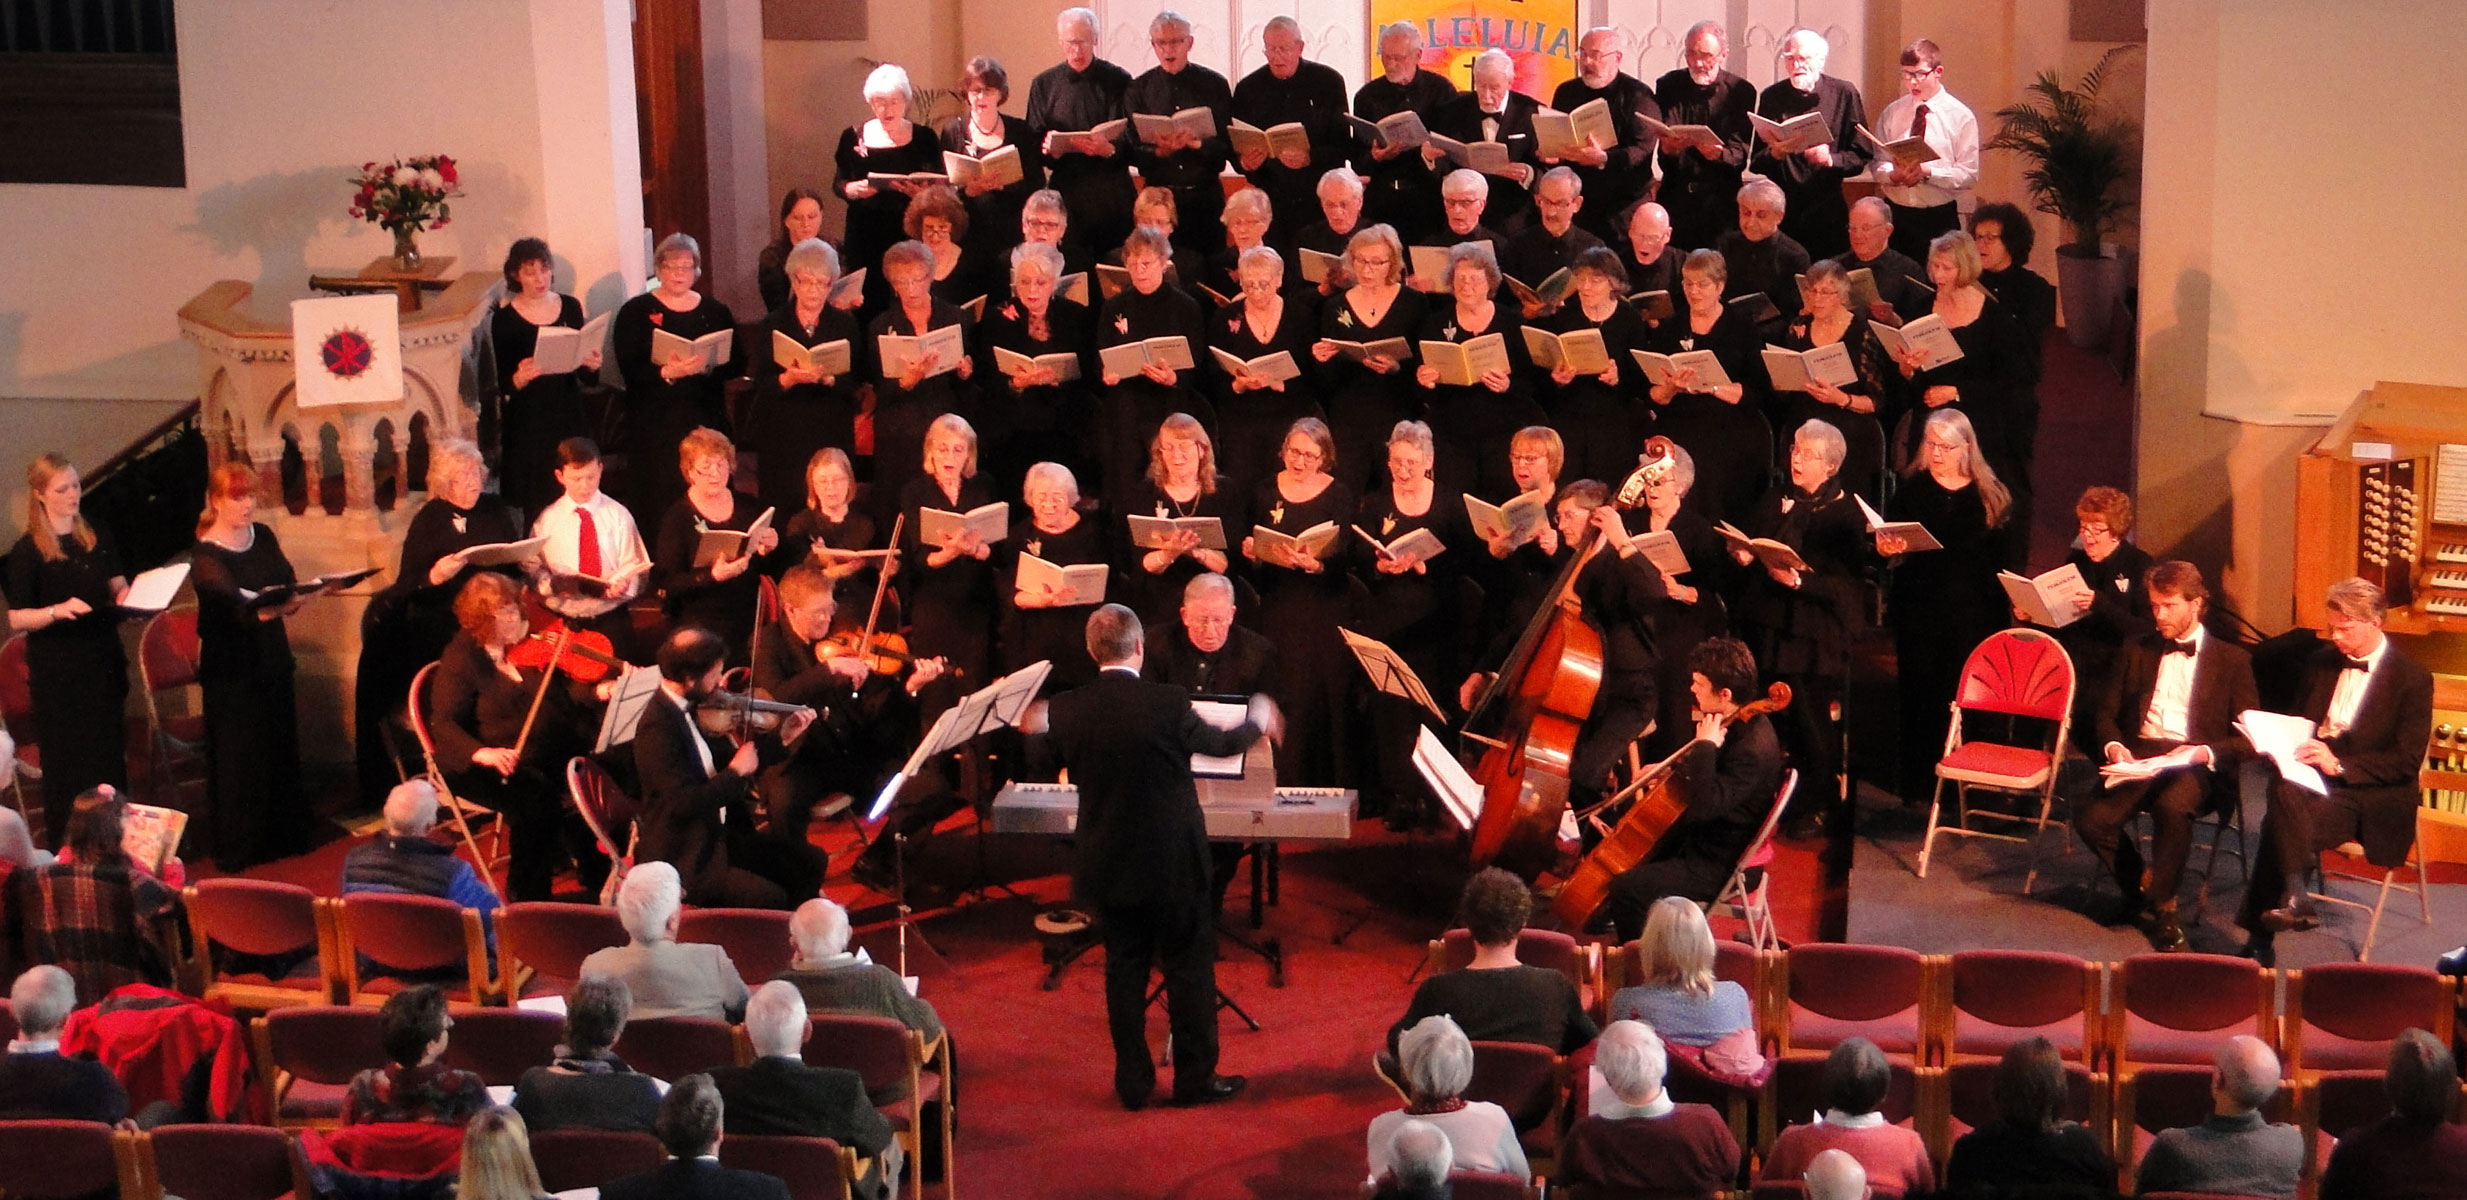 <b>Spring Concert with Orchestra &#8211; Magnificat/St. John Passion &#8211; 16th April 2016</b><br> Saturday 16th April 2016 - Spring Concert with Orchestra